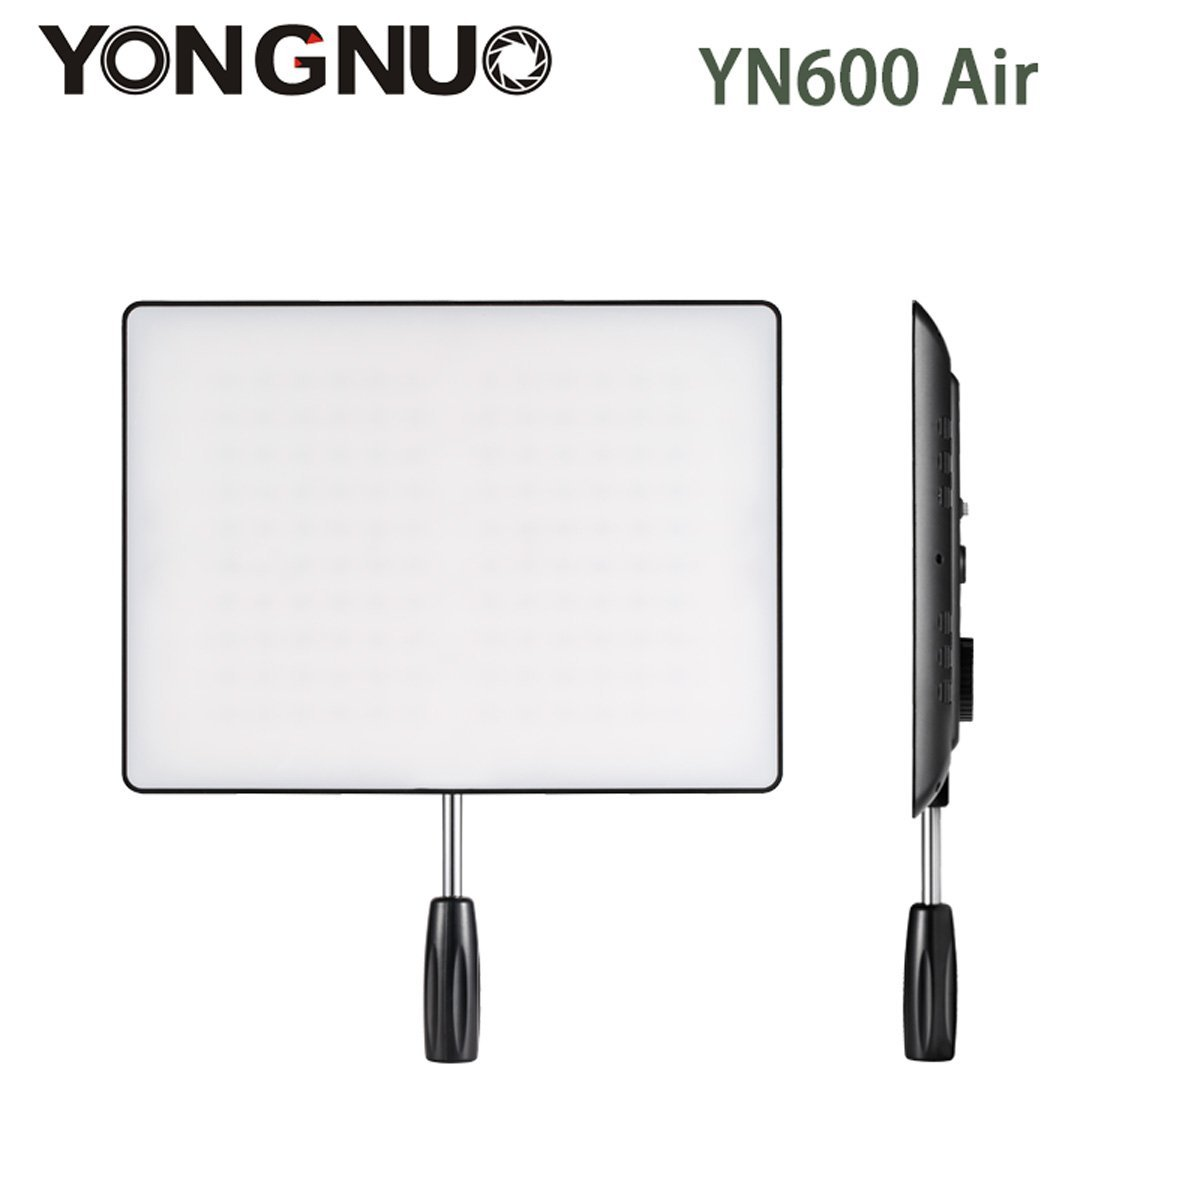 YONGNUO YN600 Air Ultra Thin LED Camera Video Light 3200K-5500K for Canon for Nikon for Pentax for Olympas DSLR & Camcorder цена